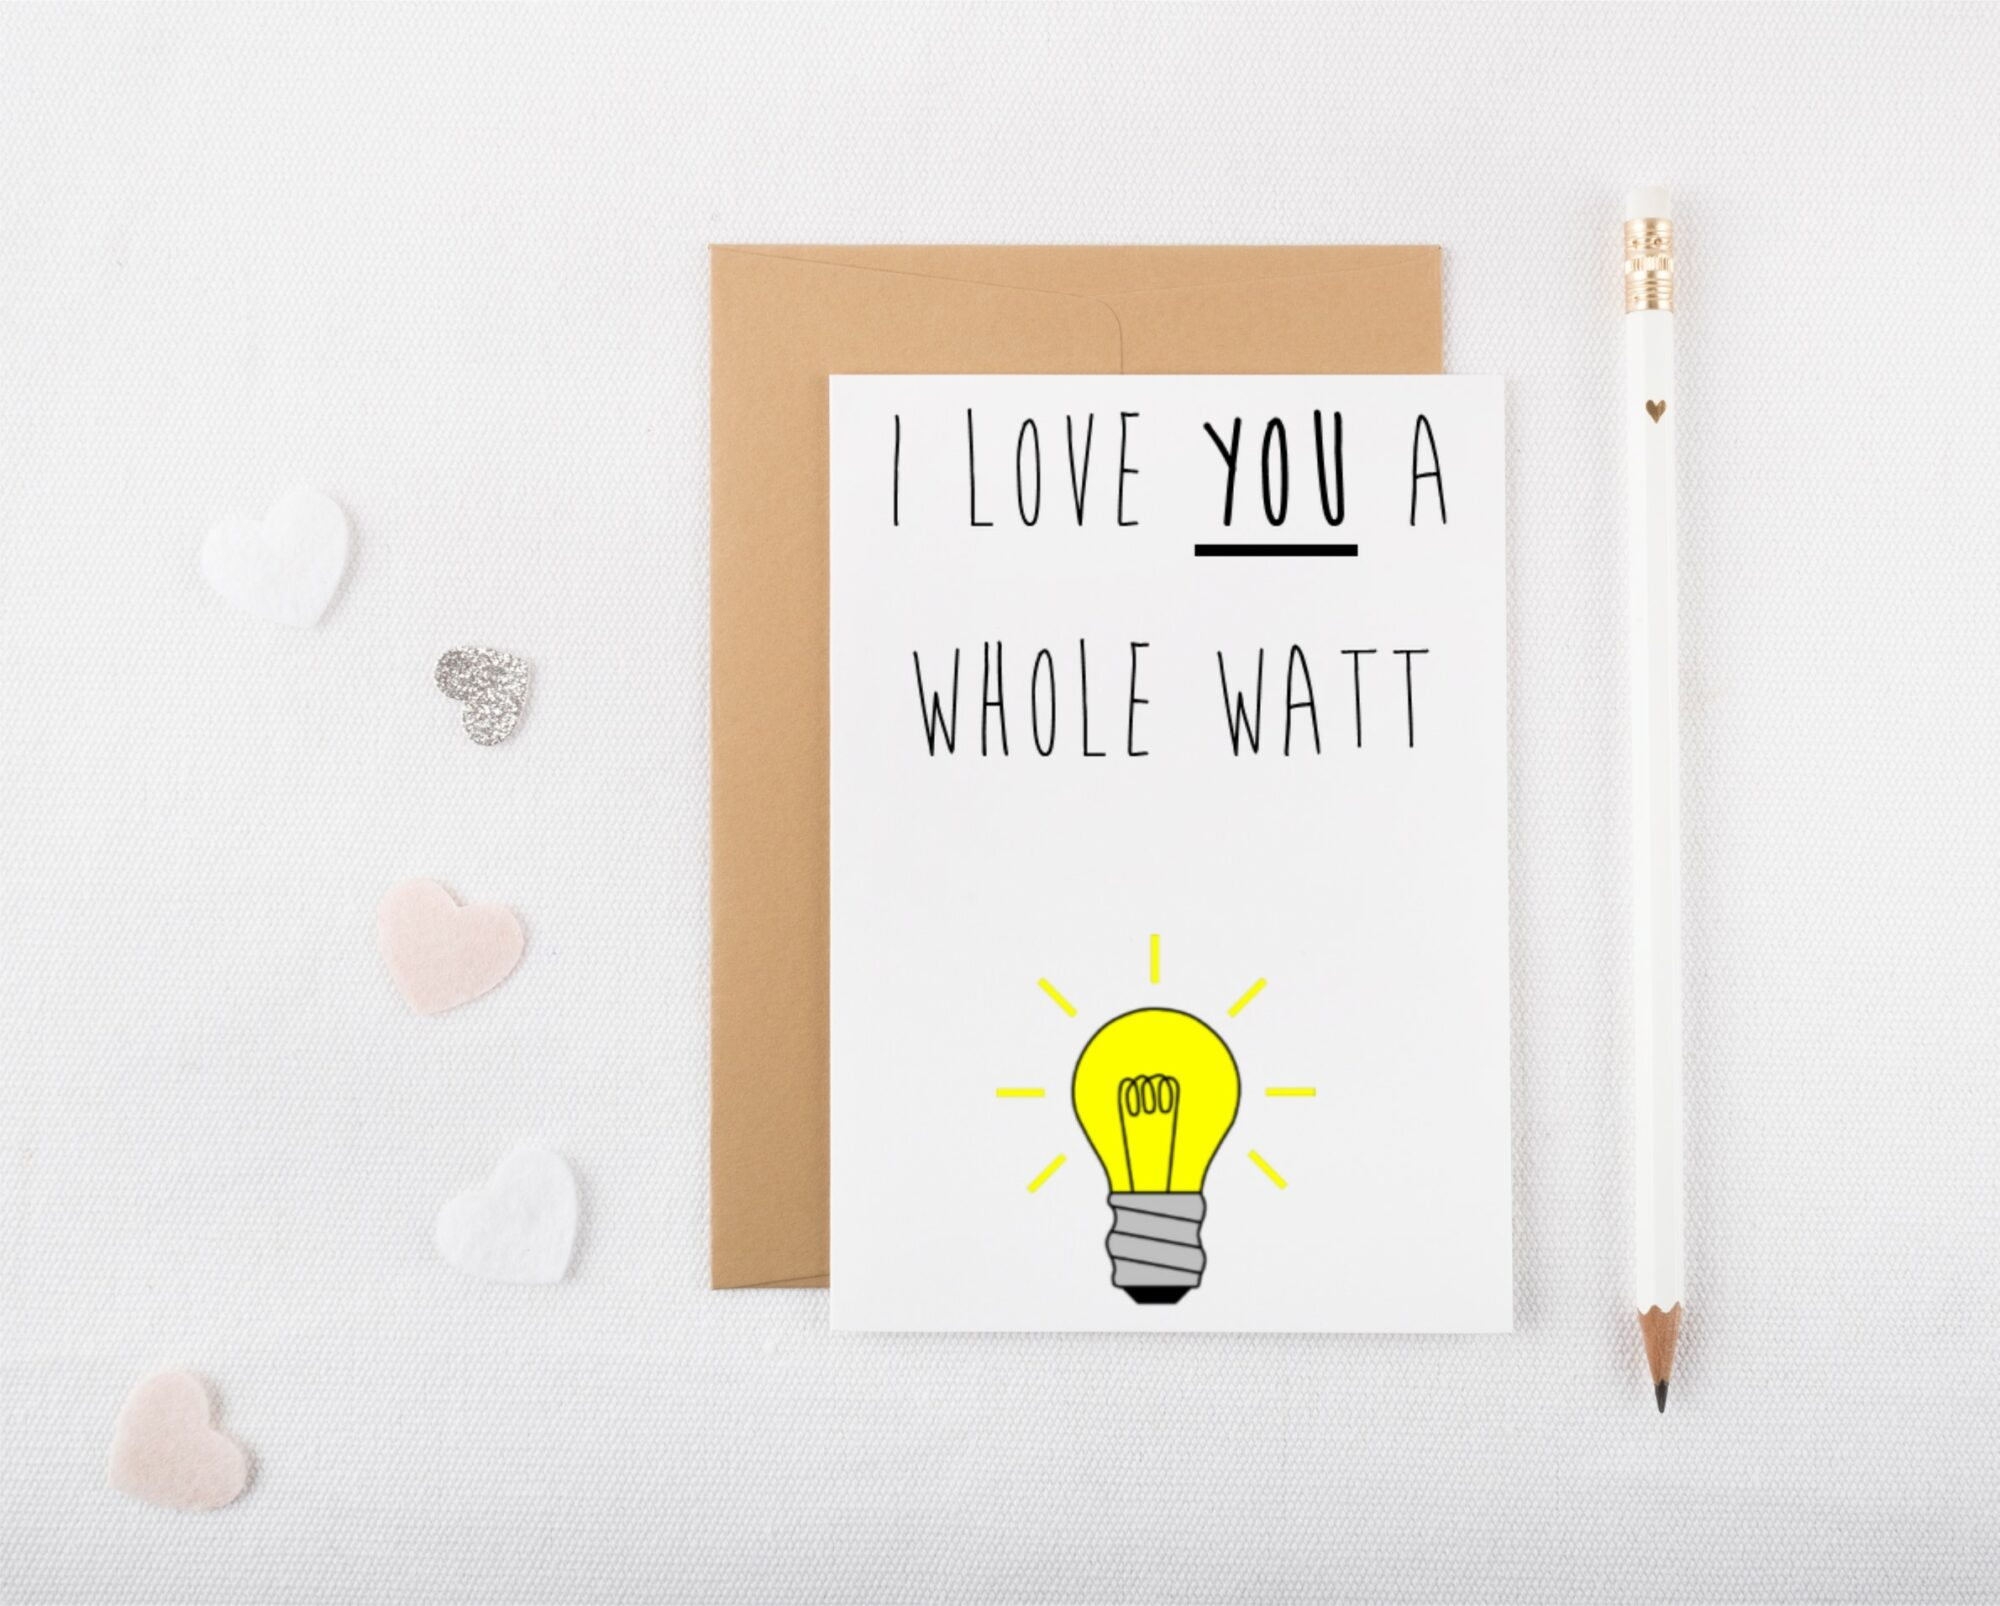 Whole Watt Valentines Card